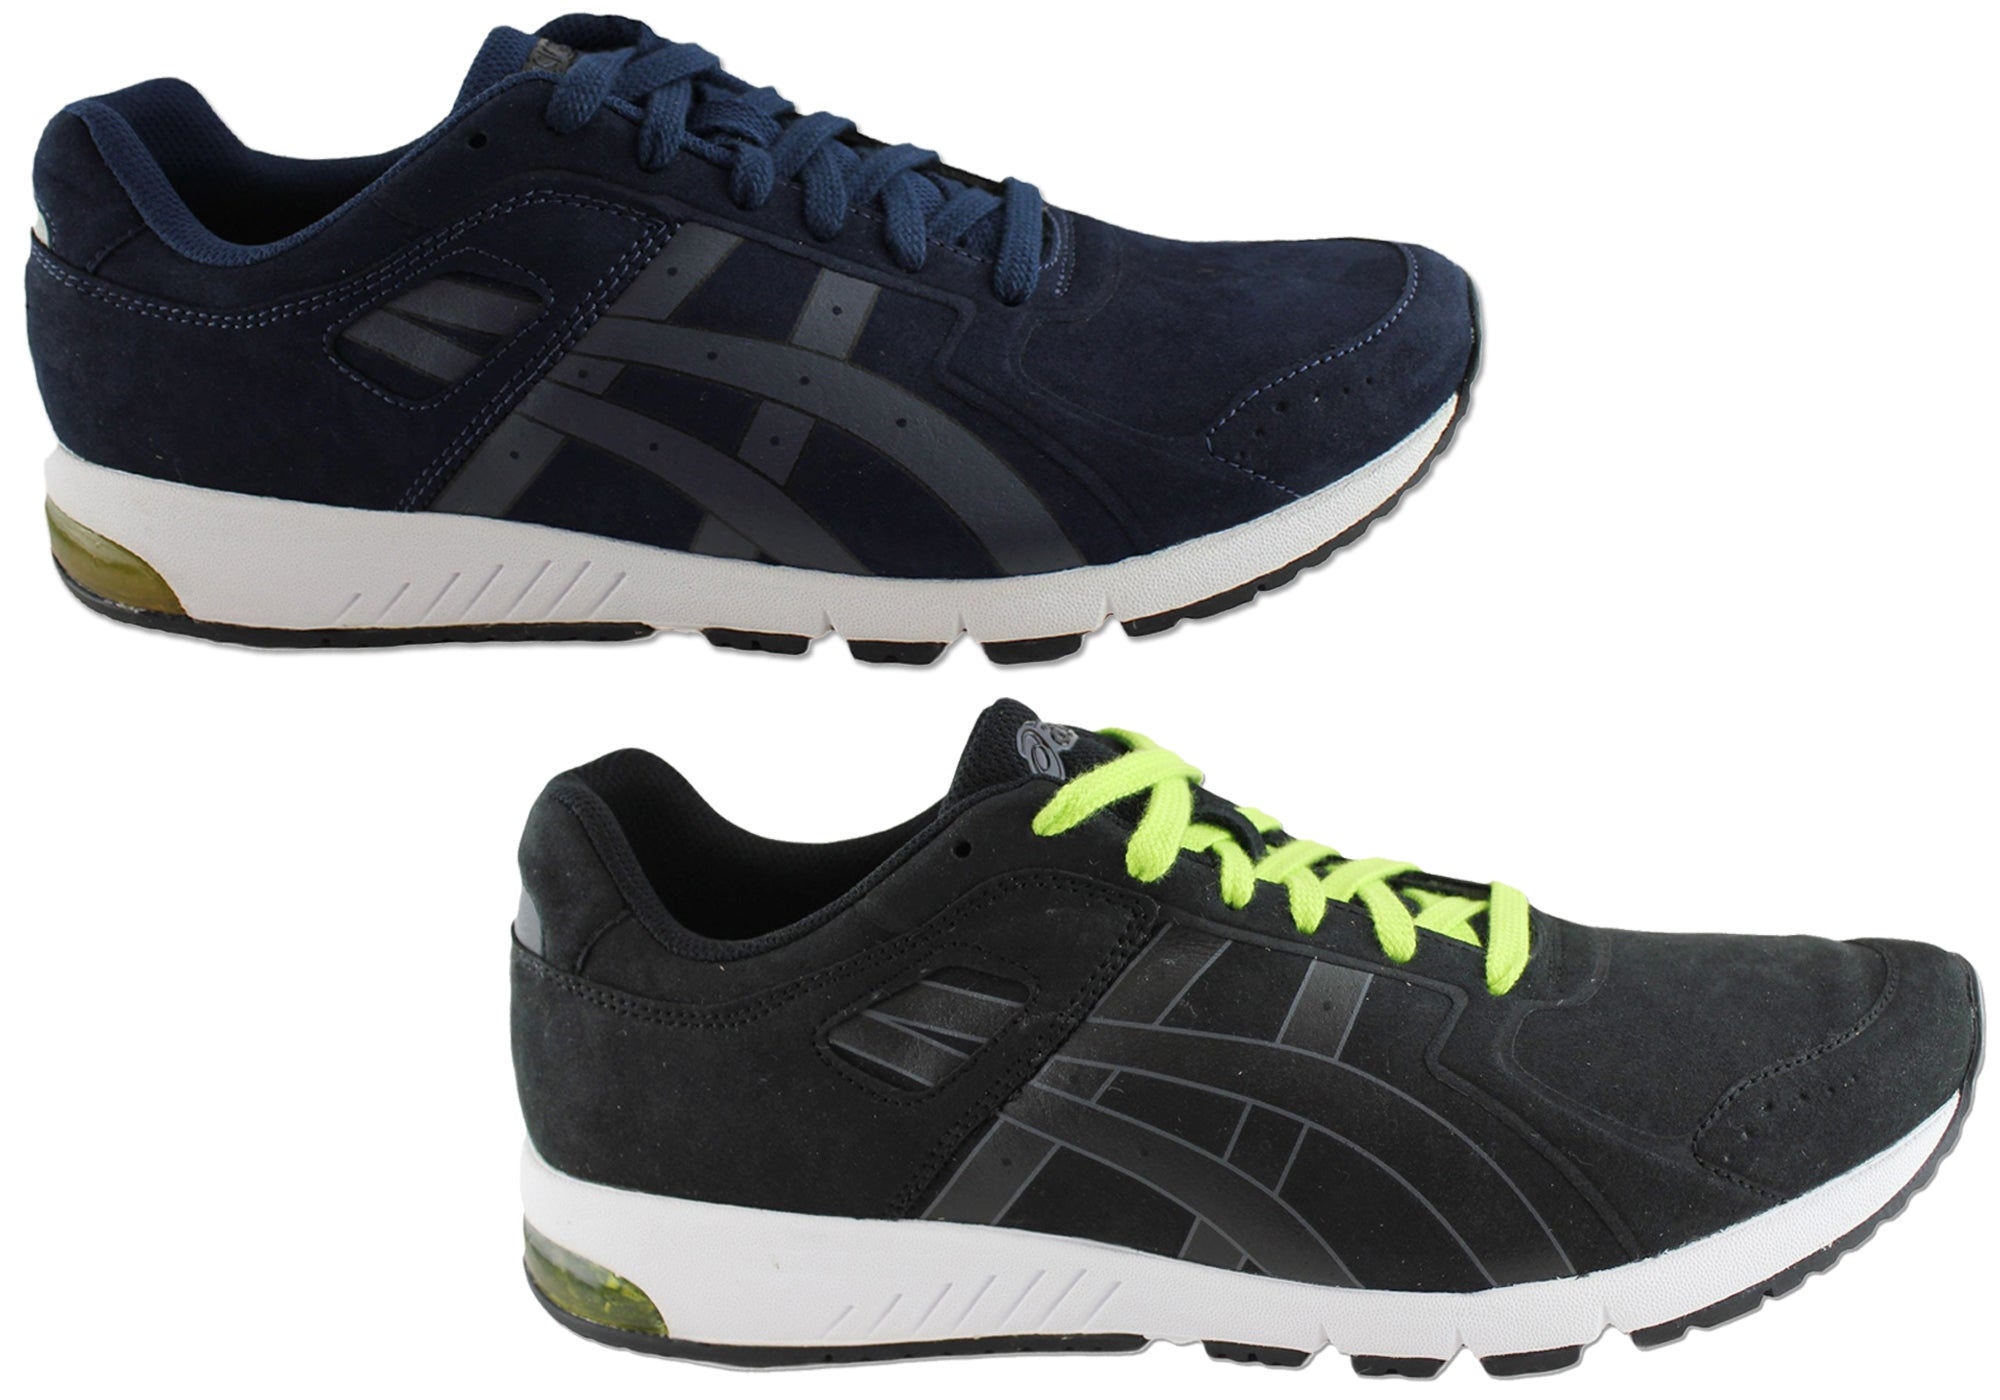 6a8c7a897 NEW ASICS GEL Uomo LACE UP CASUAL TRAINERS Scarpe GT-XL SPORT ...